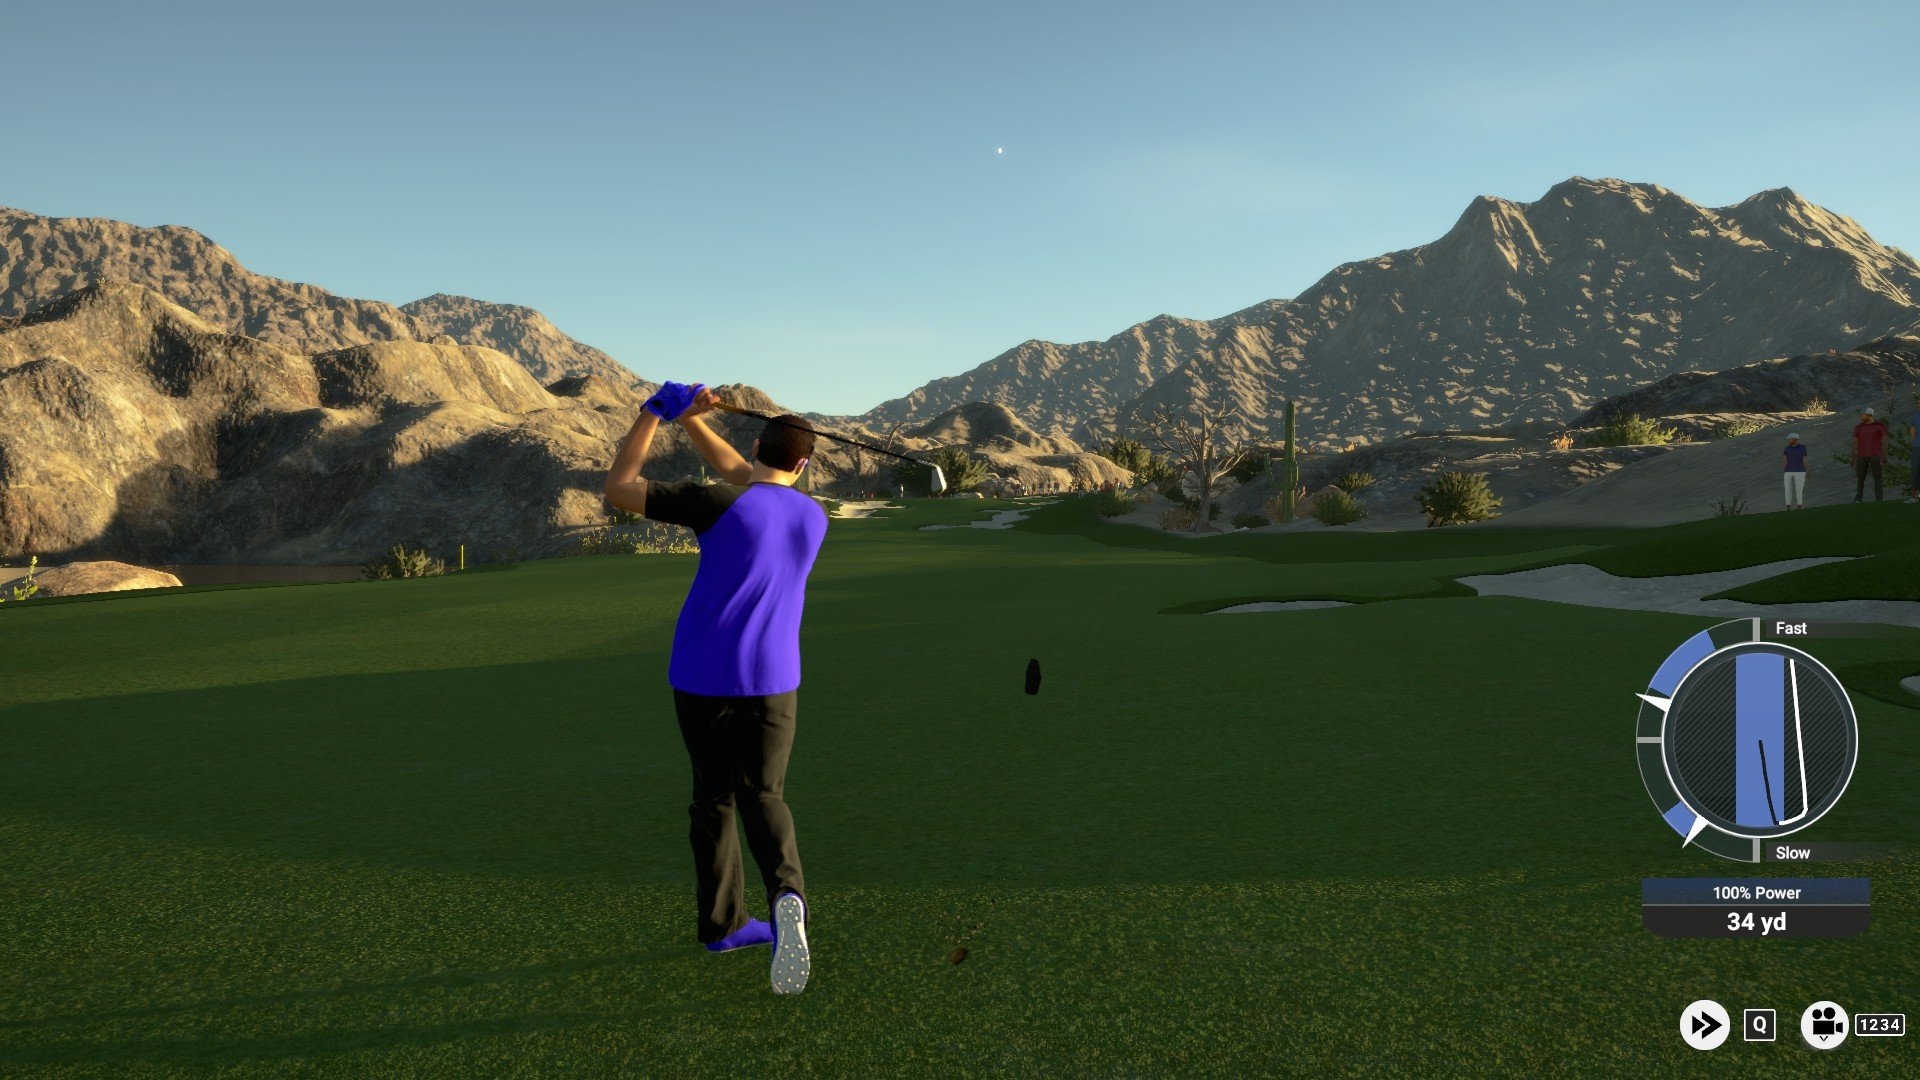 The Golf Club 2019 Swing